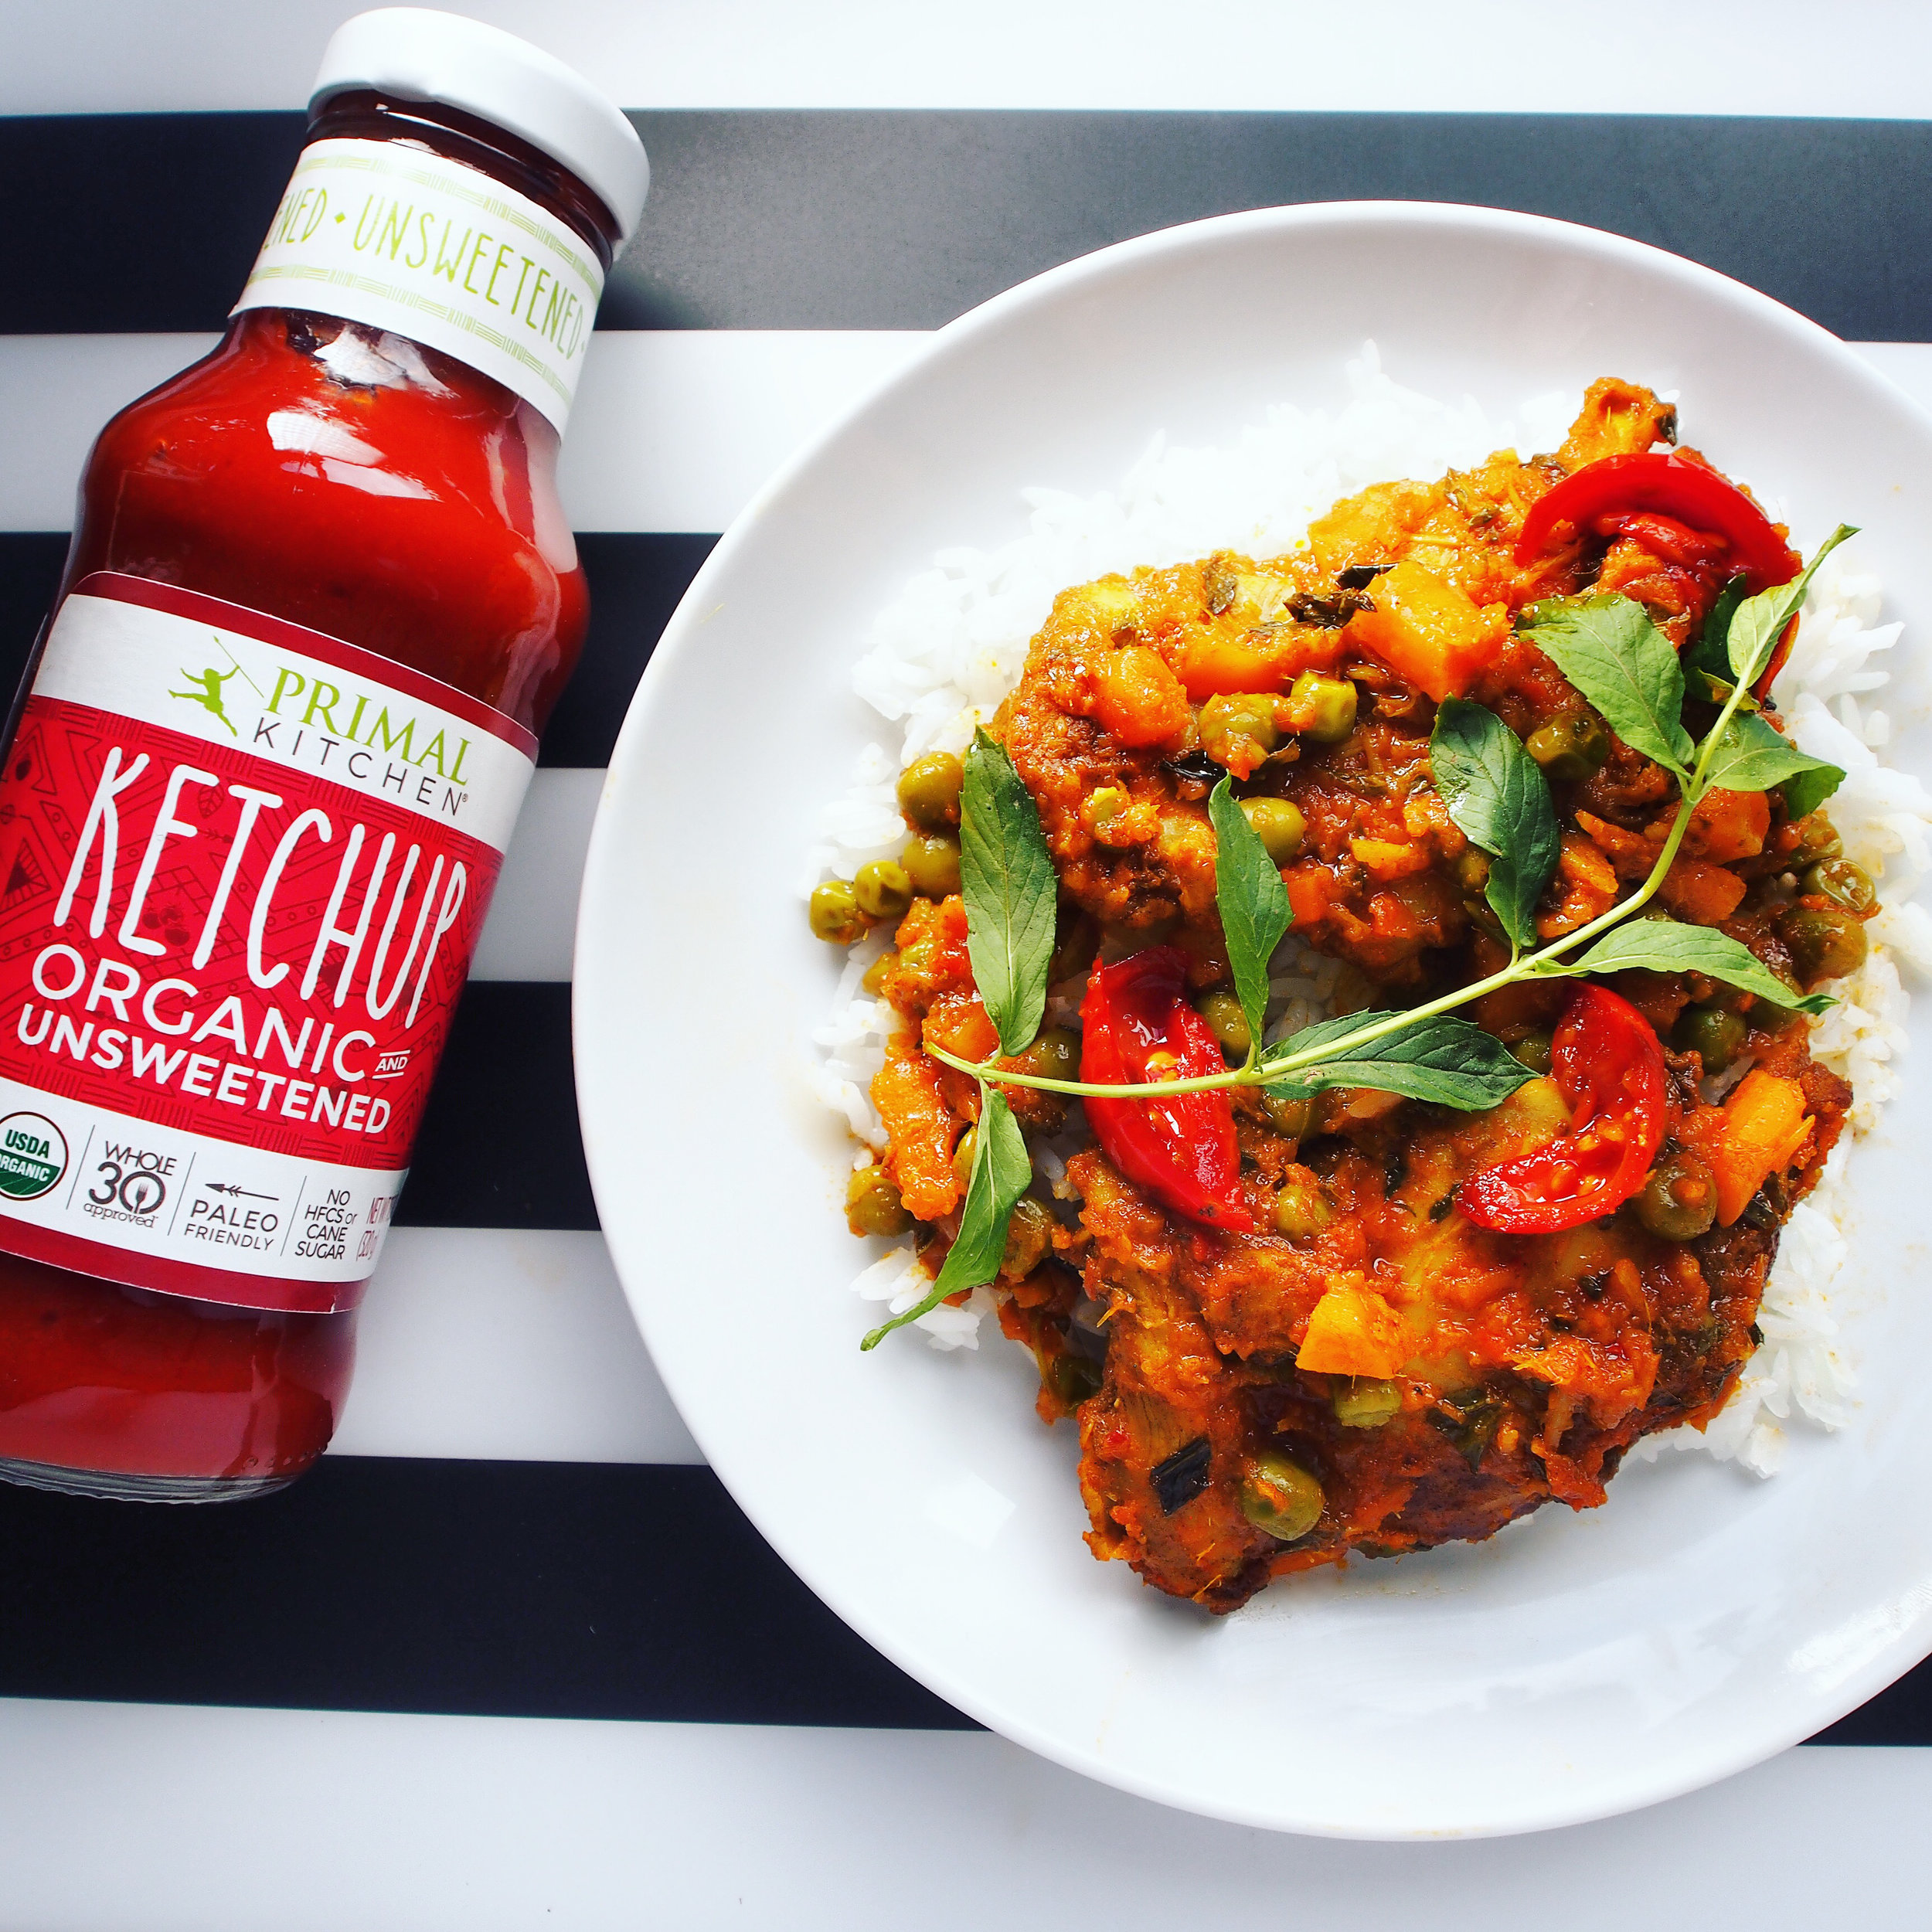 This Thai stir-fry is made with Primal Kitchen Foods' Organic Ketchup. It has Whole30-Approved ingredients and is Paleo-Friendly! Ketchup is not only a condiment, but great for use in Asian stir-fry recipes!